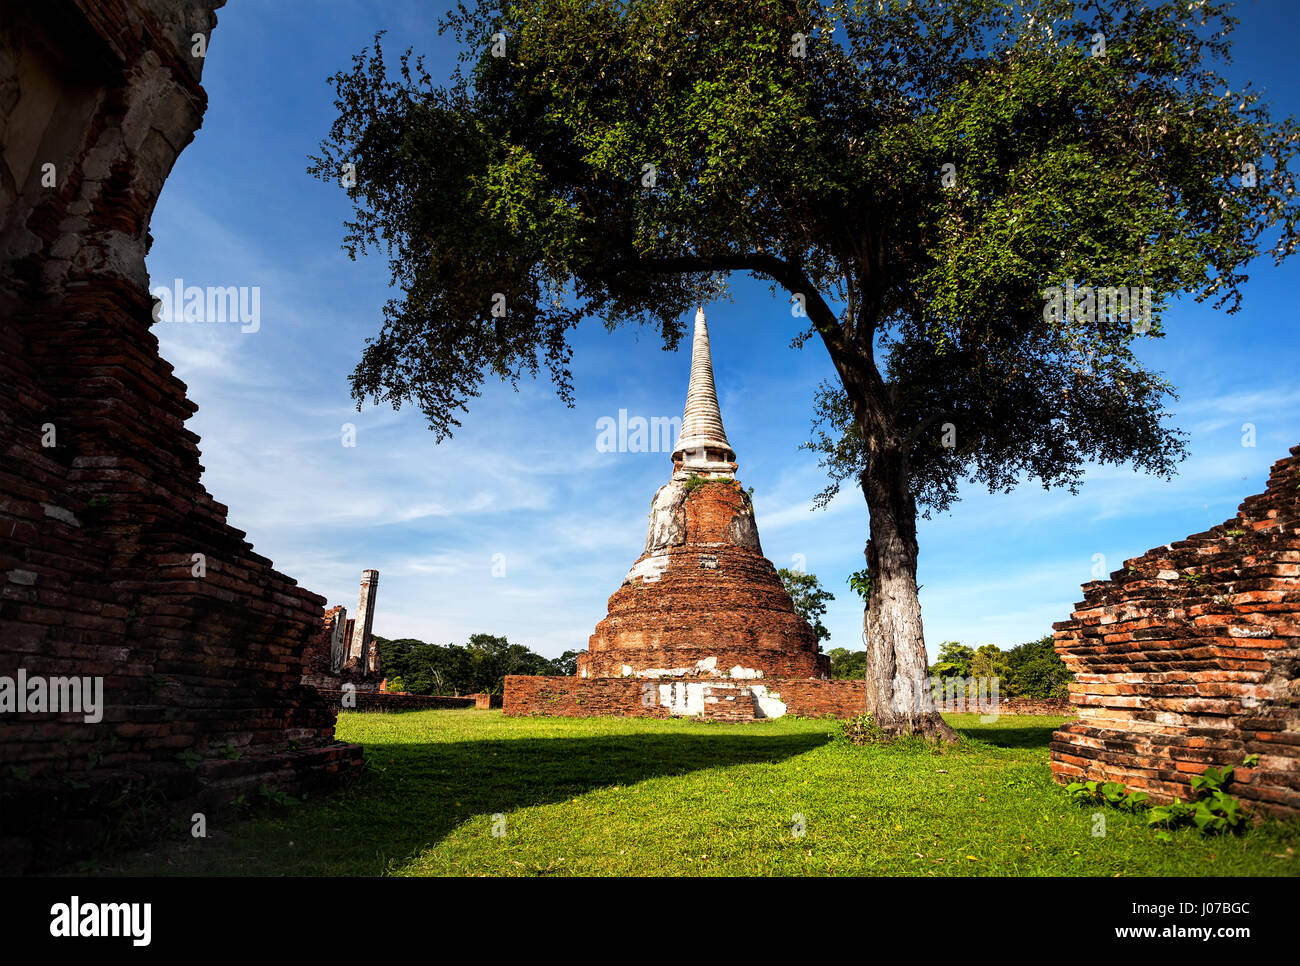 Big ruined Stupa at Wat Mahathat in Ayuttaya historical capital of Thailand - Stock Image